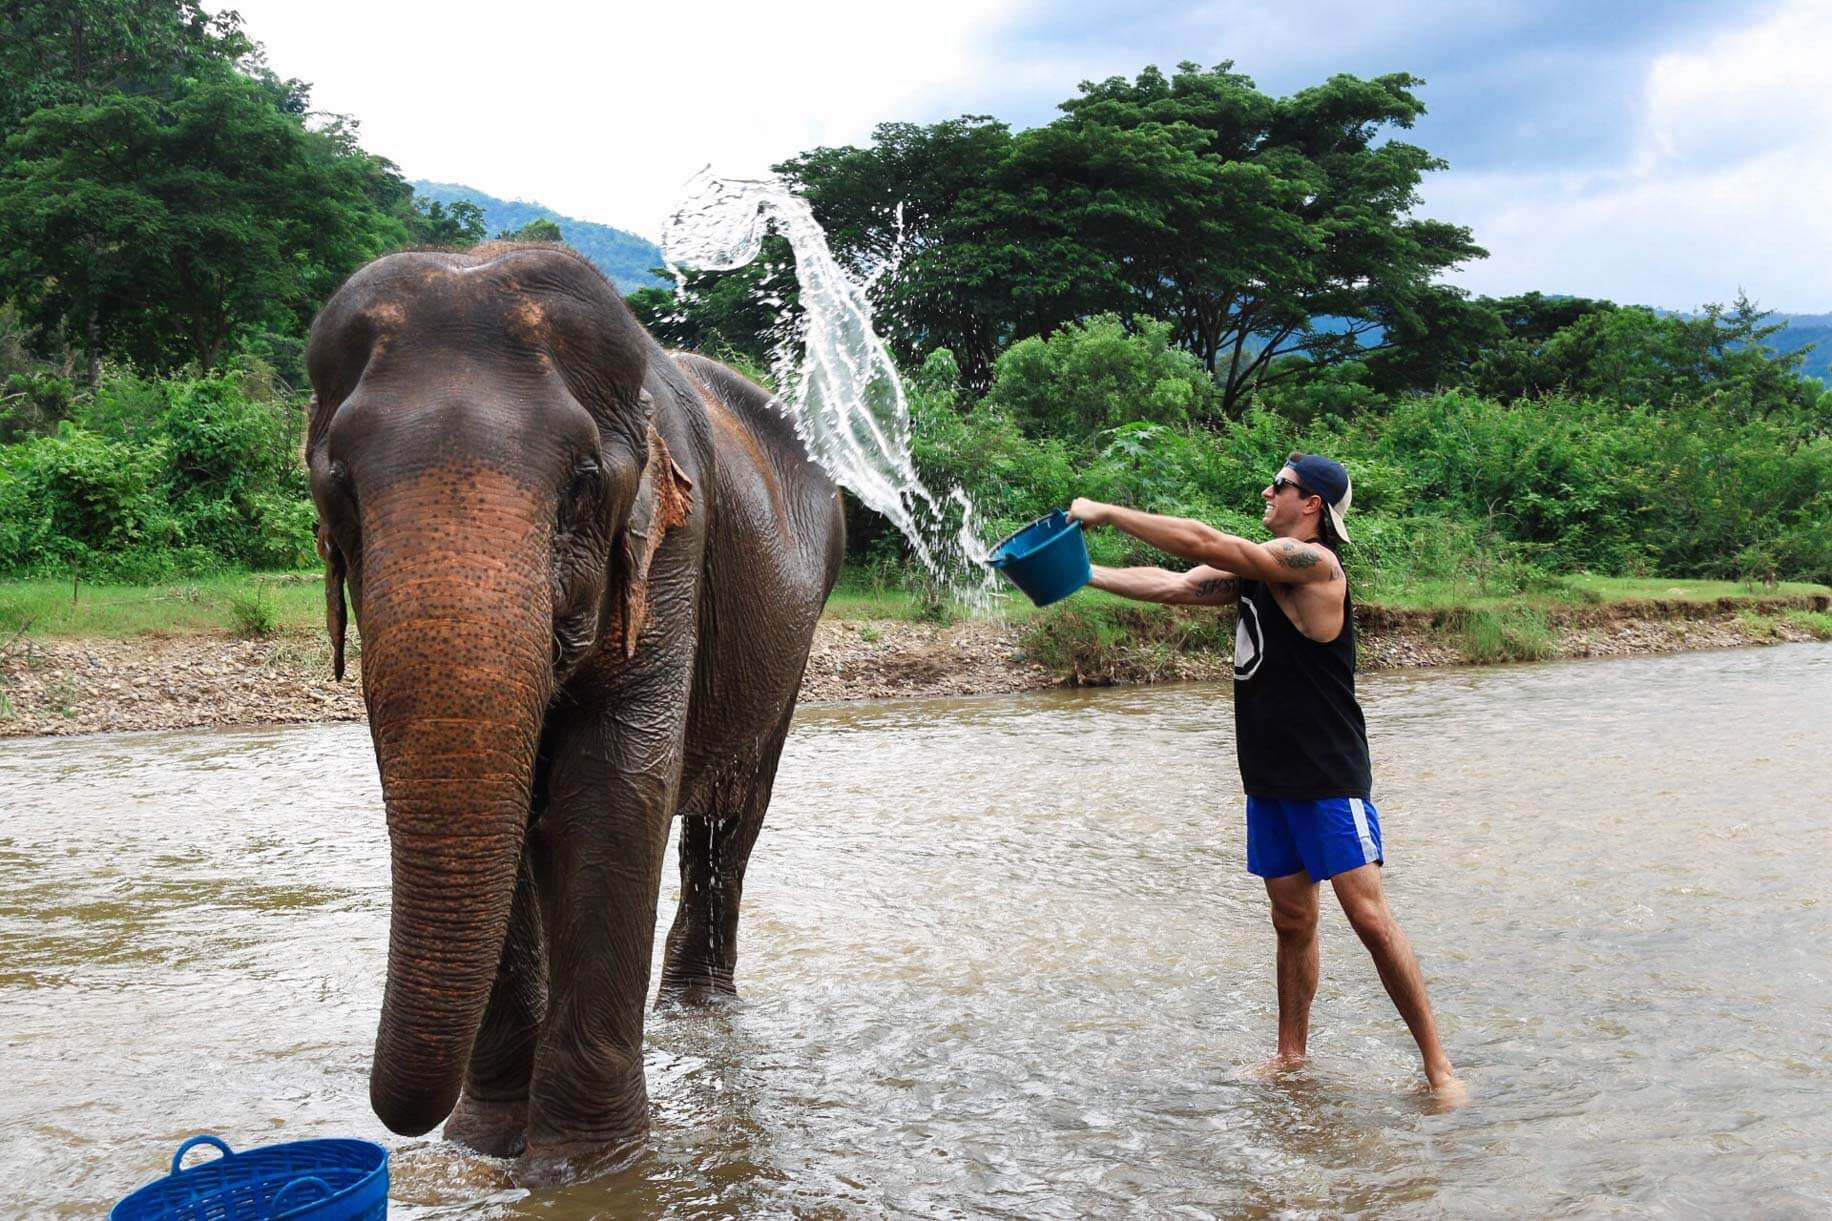 michael bathing an elephant at elephant nature reserve chiang mai thailand